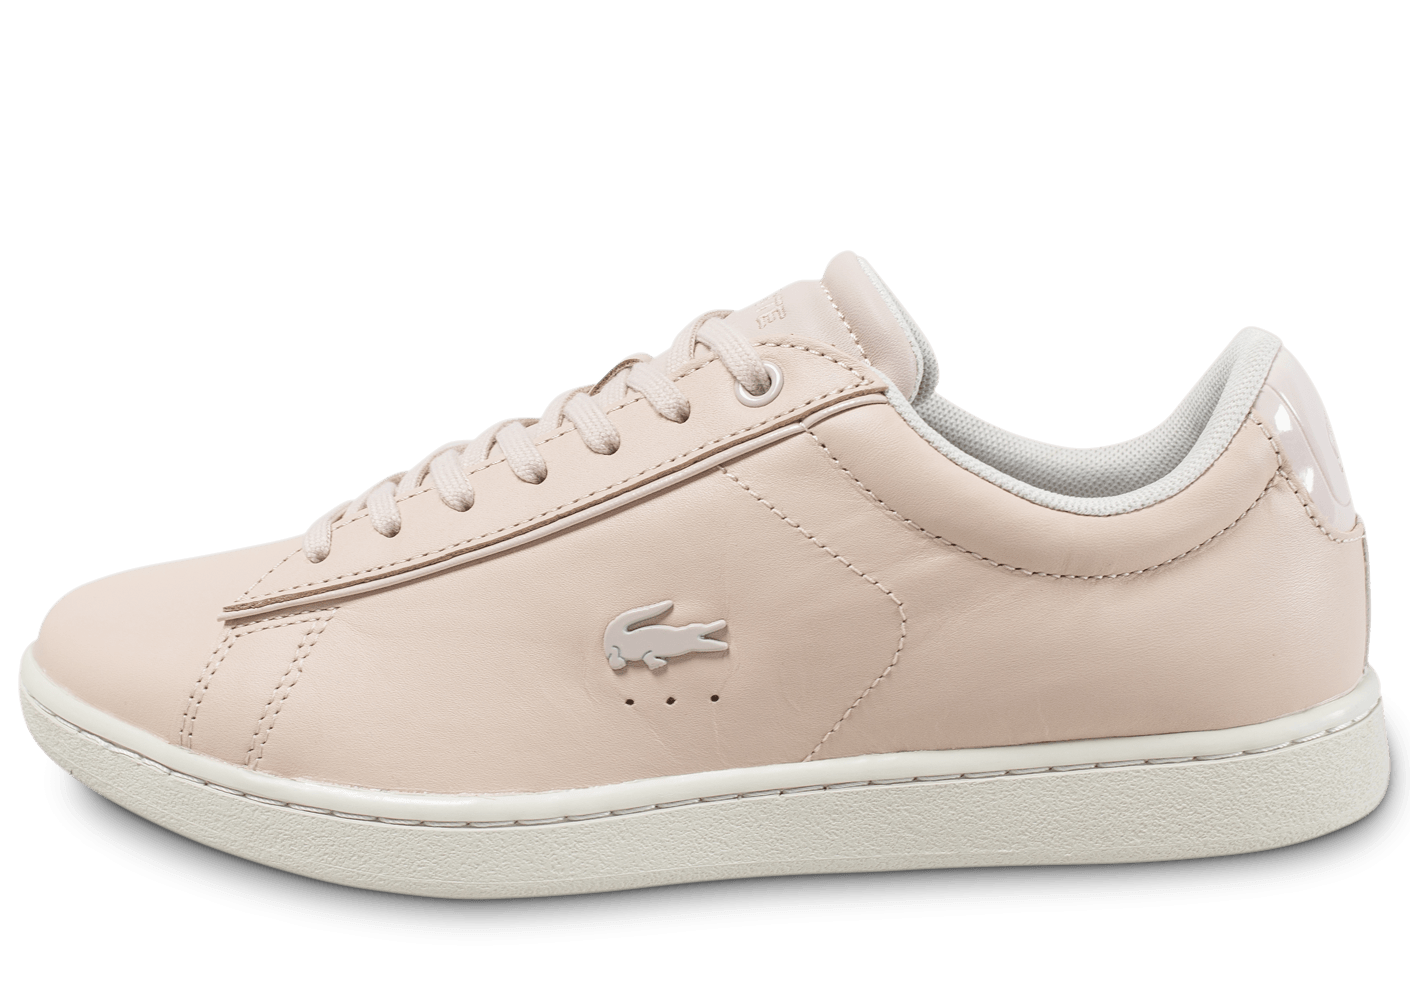 a7b5384349 Lacoste Rose Chaussure Chaussure Lacoste wP8qnXf